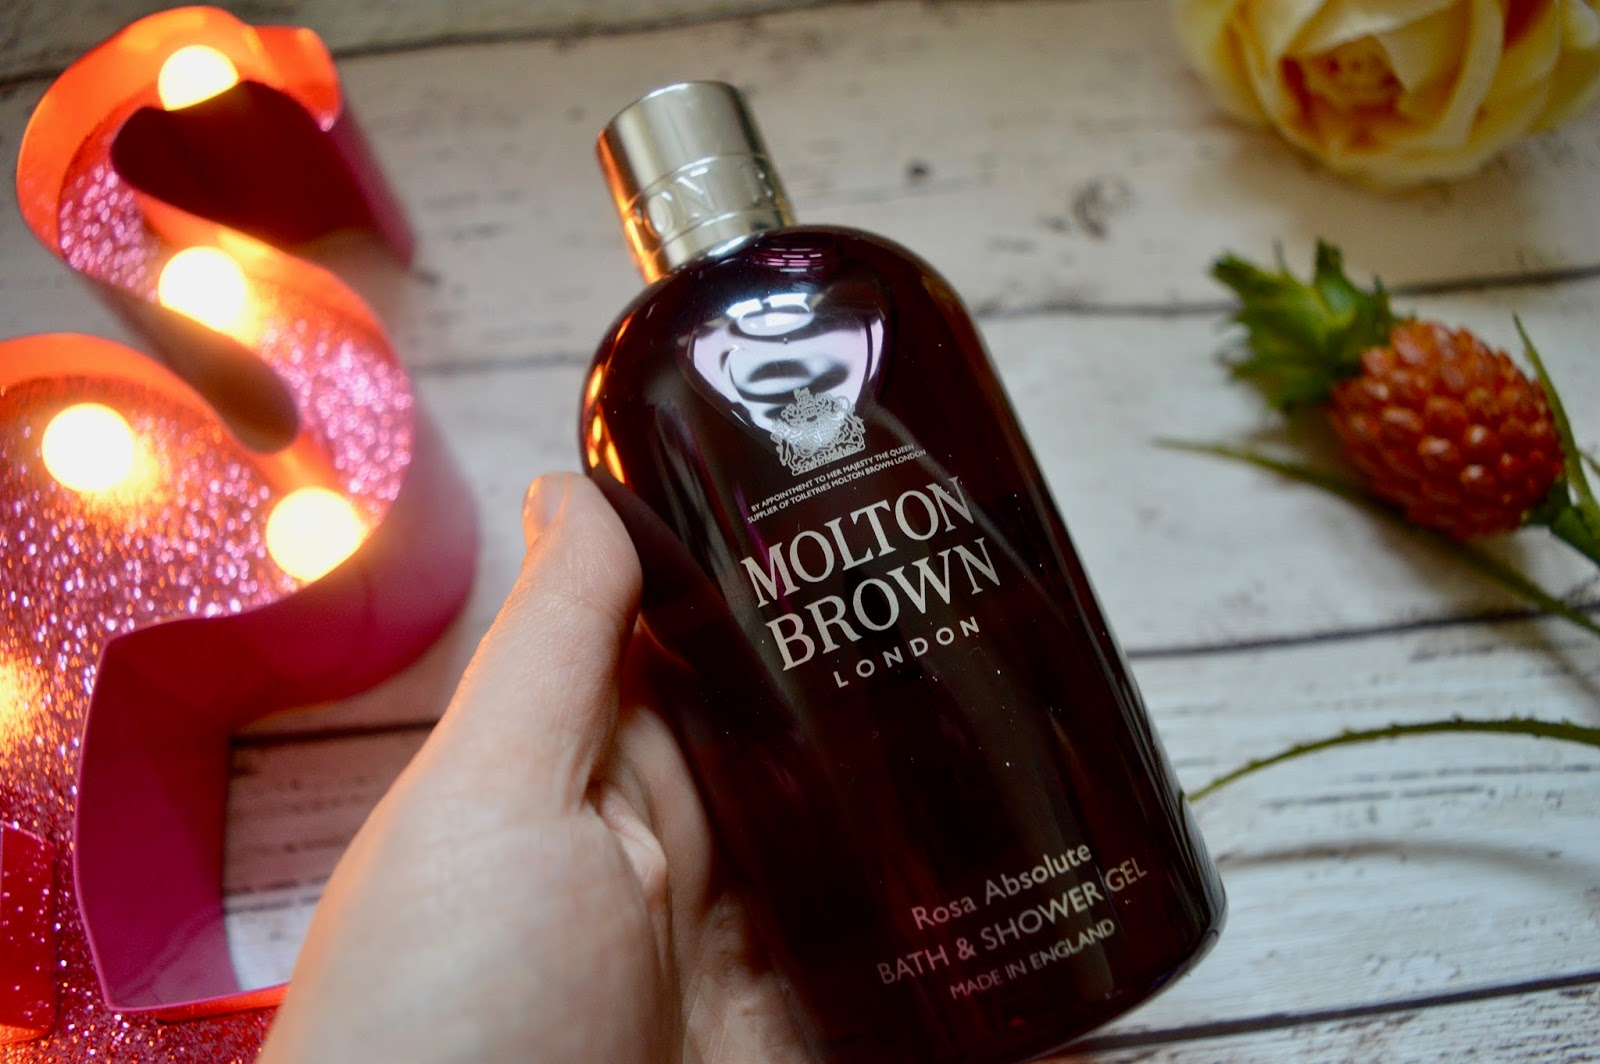 molten brown rosa absolute bath and shower gel review